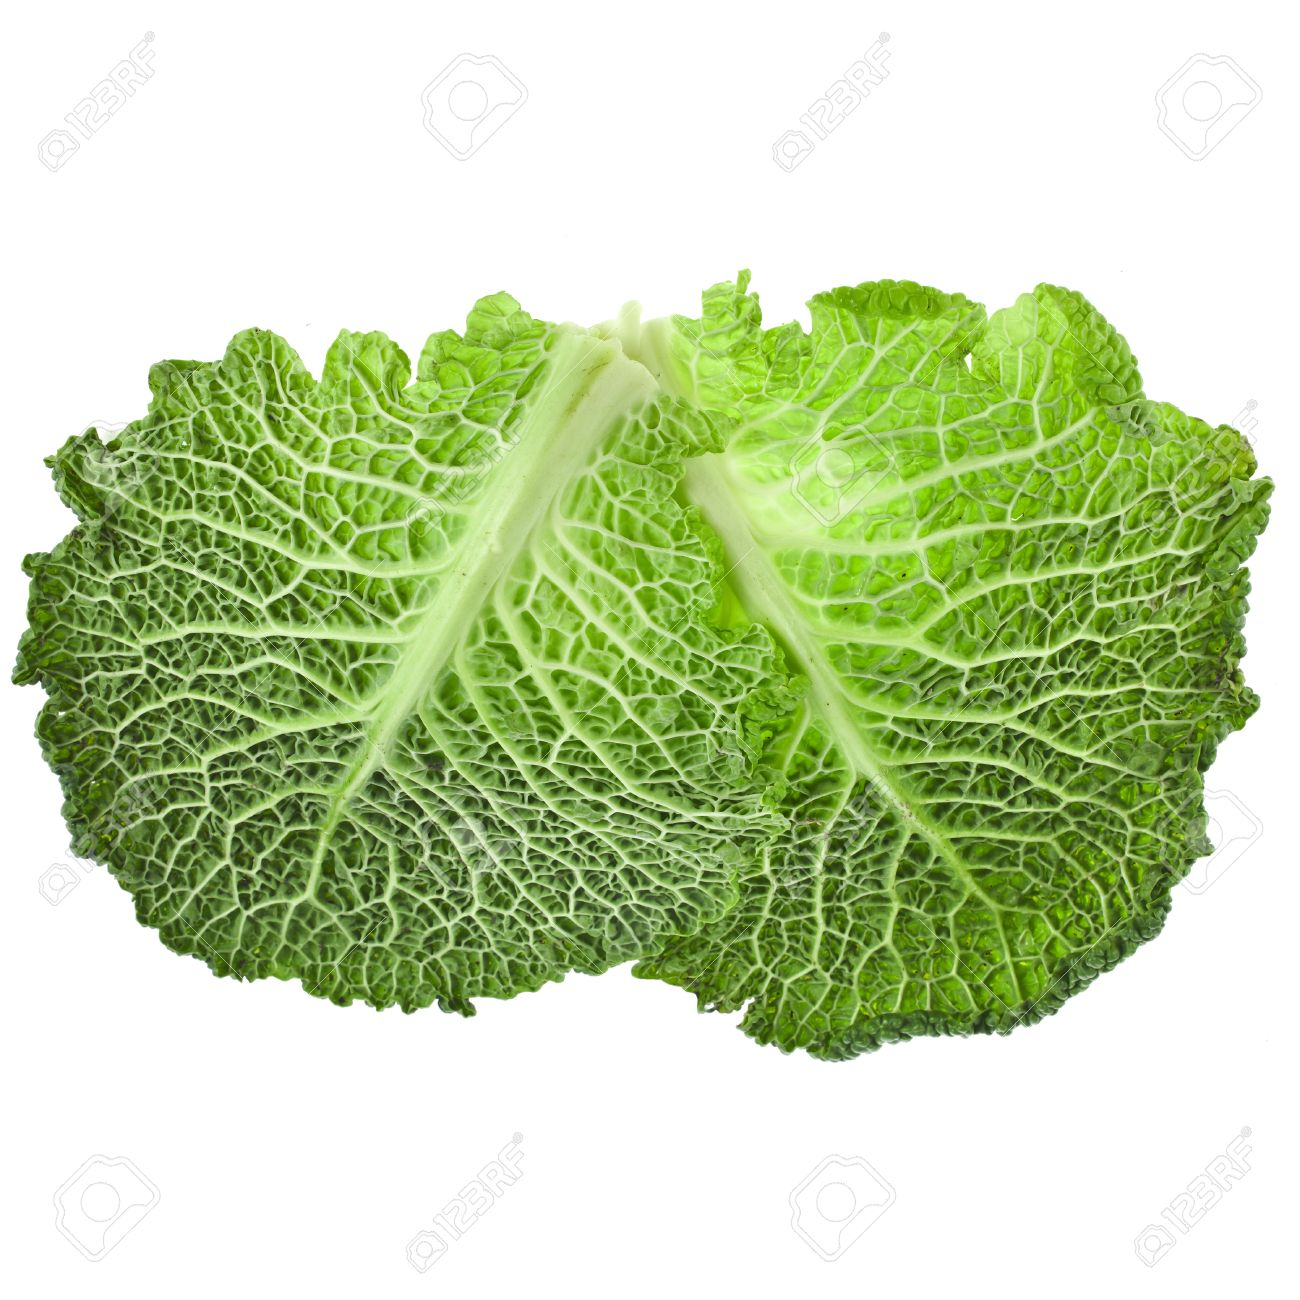 Savoy Cabbage Leaf Texture Isolated On White Background Stock Photo Picture And Royalty Free Image Image 18844129